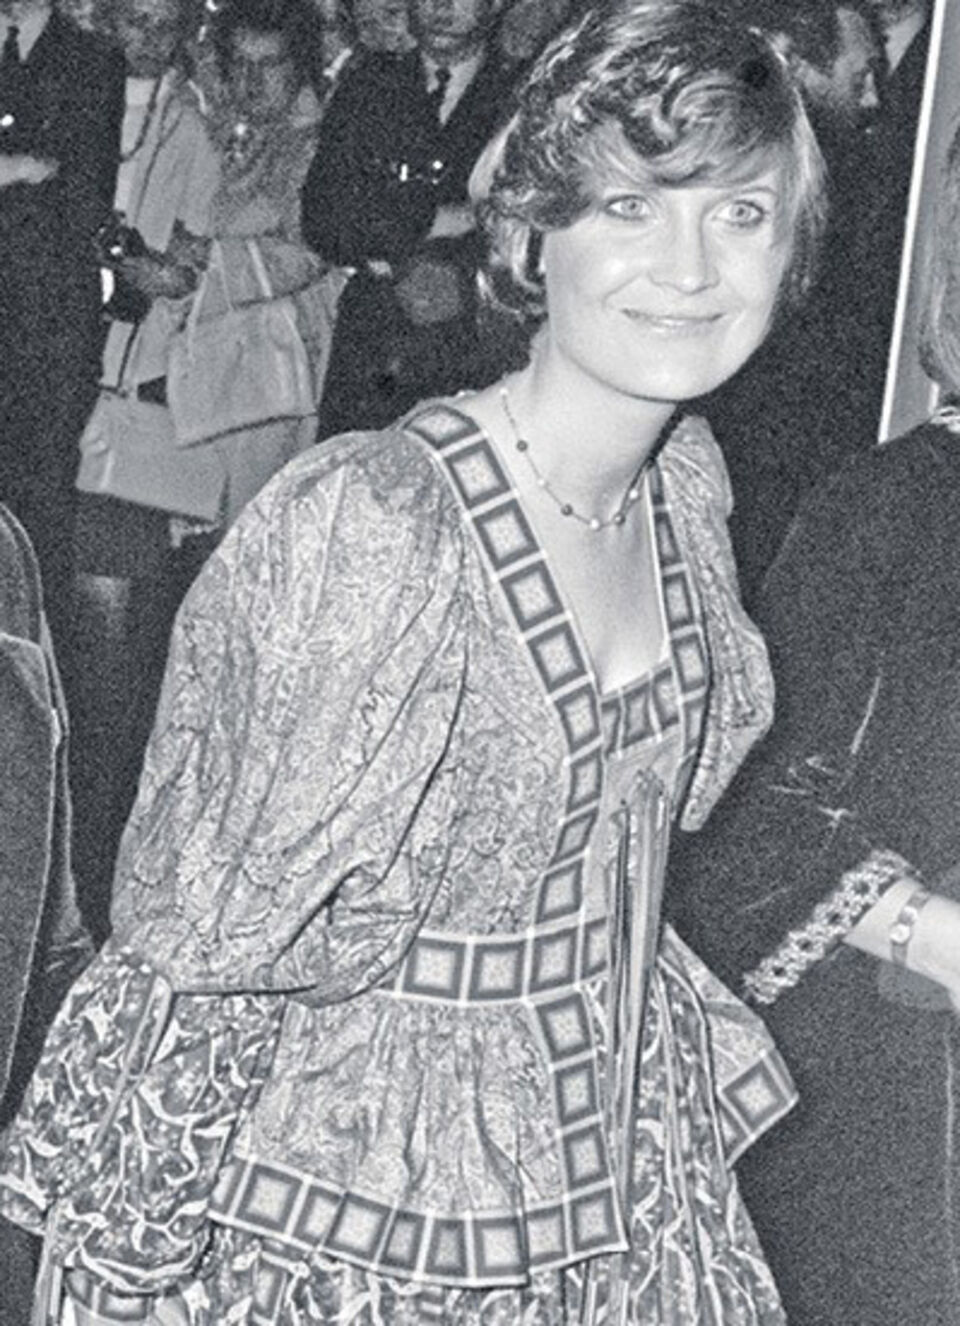 Archive image of Sandie Shaw wearing the Tana dress at the London Palladium in 1972